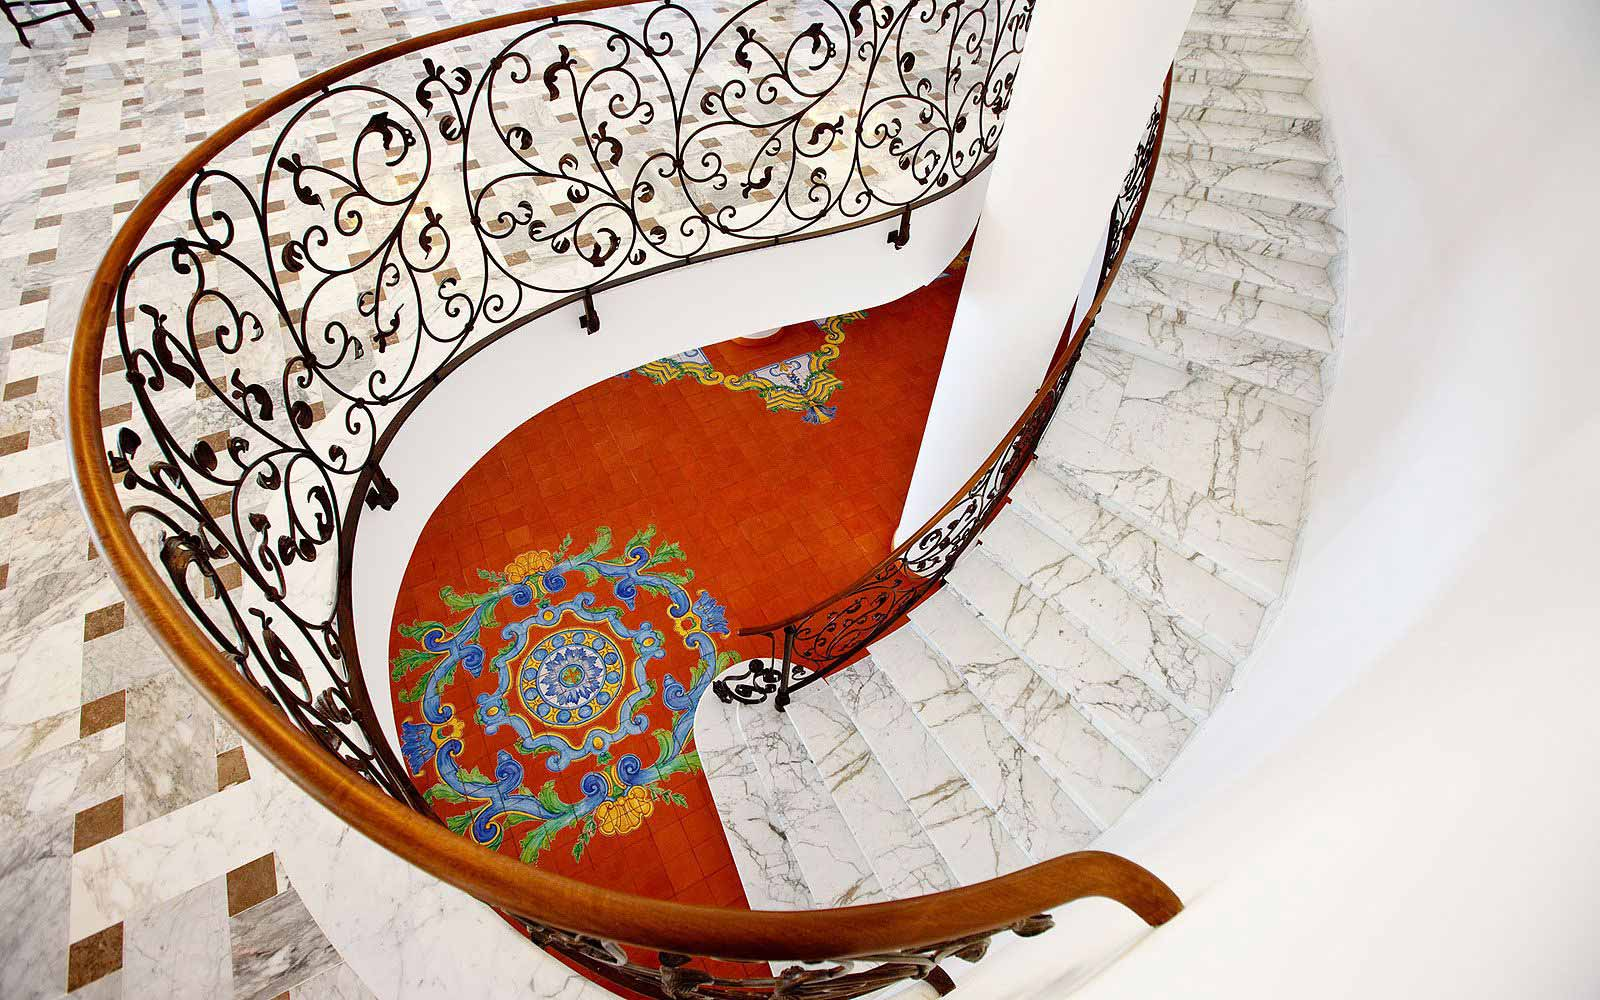 Internal staircase at the Grand Hotel La Favorita